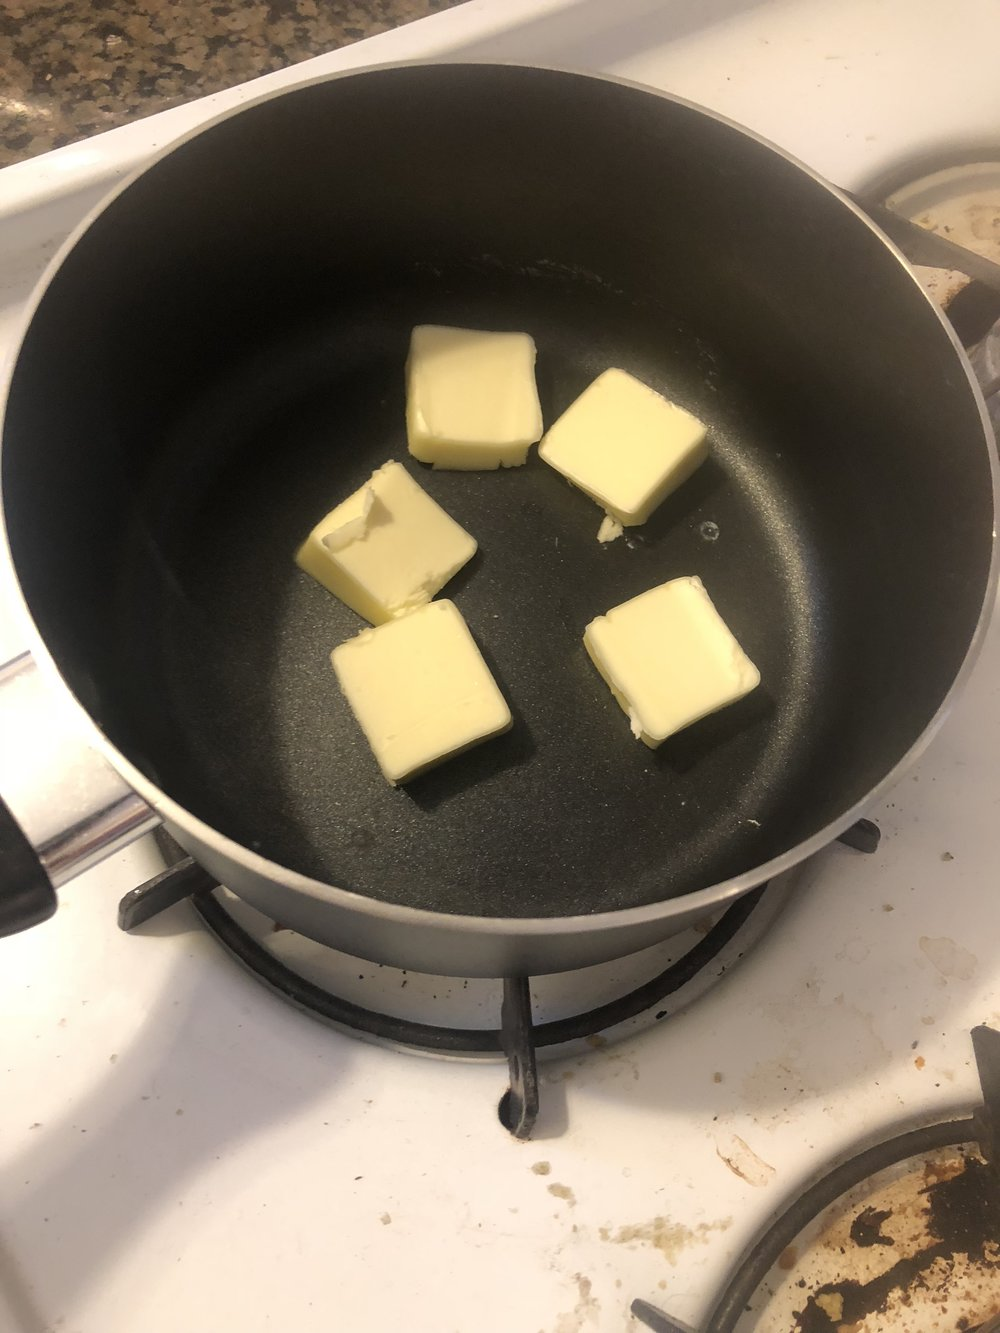 Add the butter into your medium sauce pan. Melt the butter over medium heat and don't let turn to b butter.